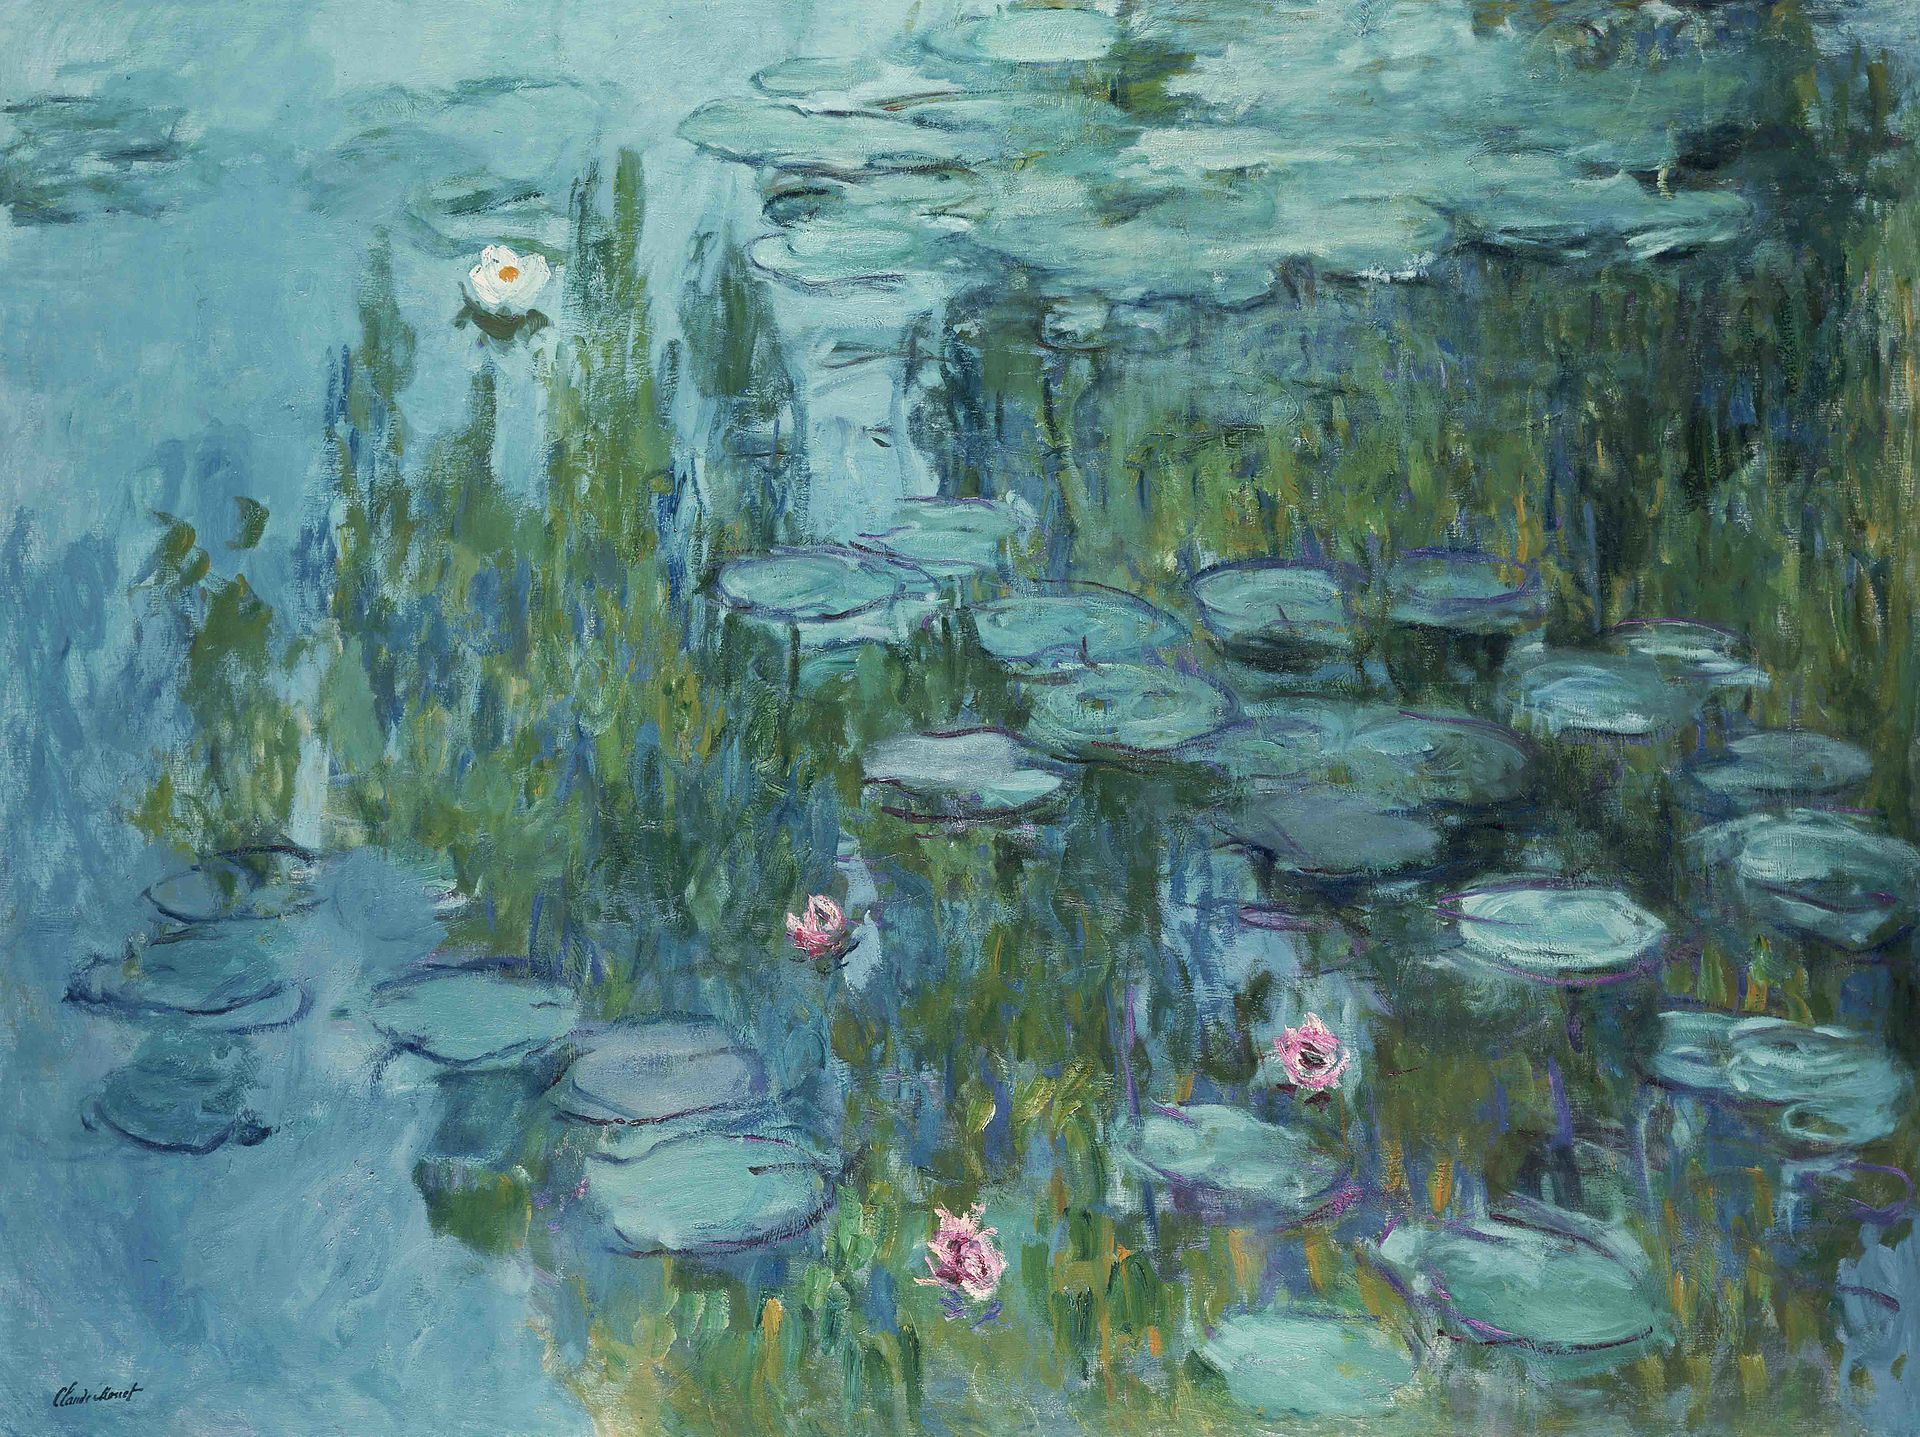 Pin by Katie on The Impressionists | Claude monet water lilies, Claude  monet paintings, Claude monet